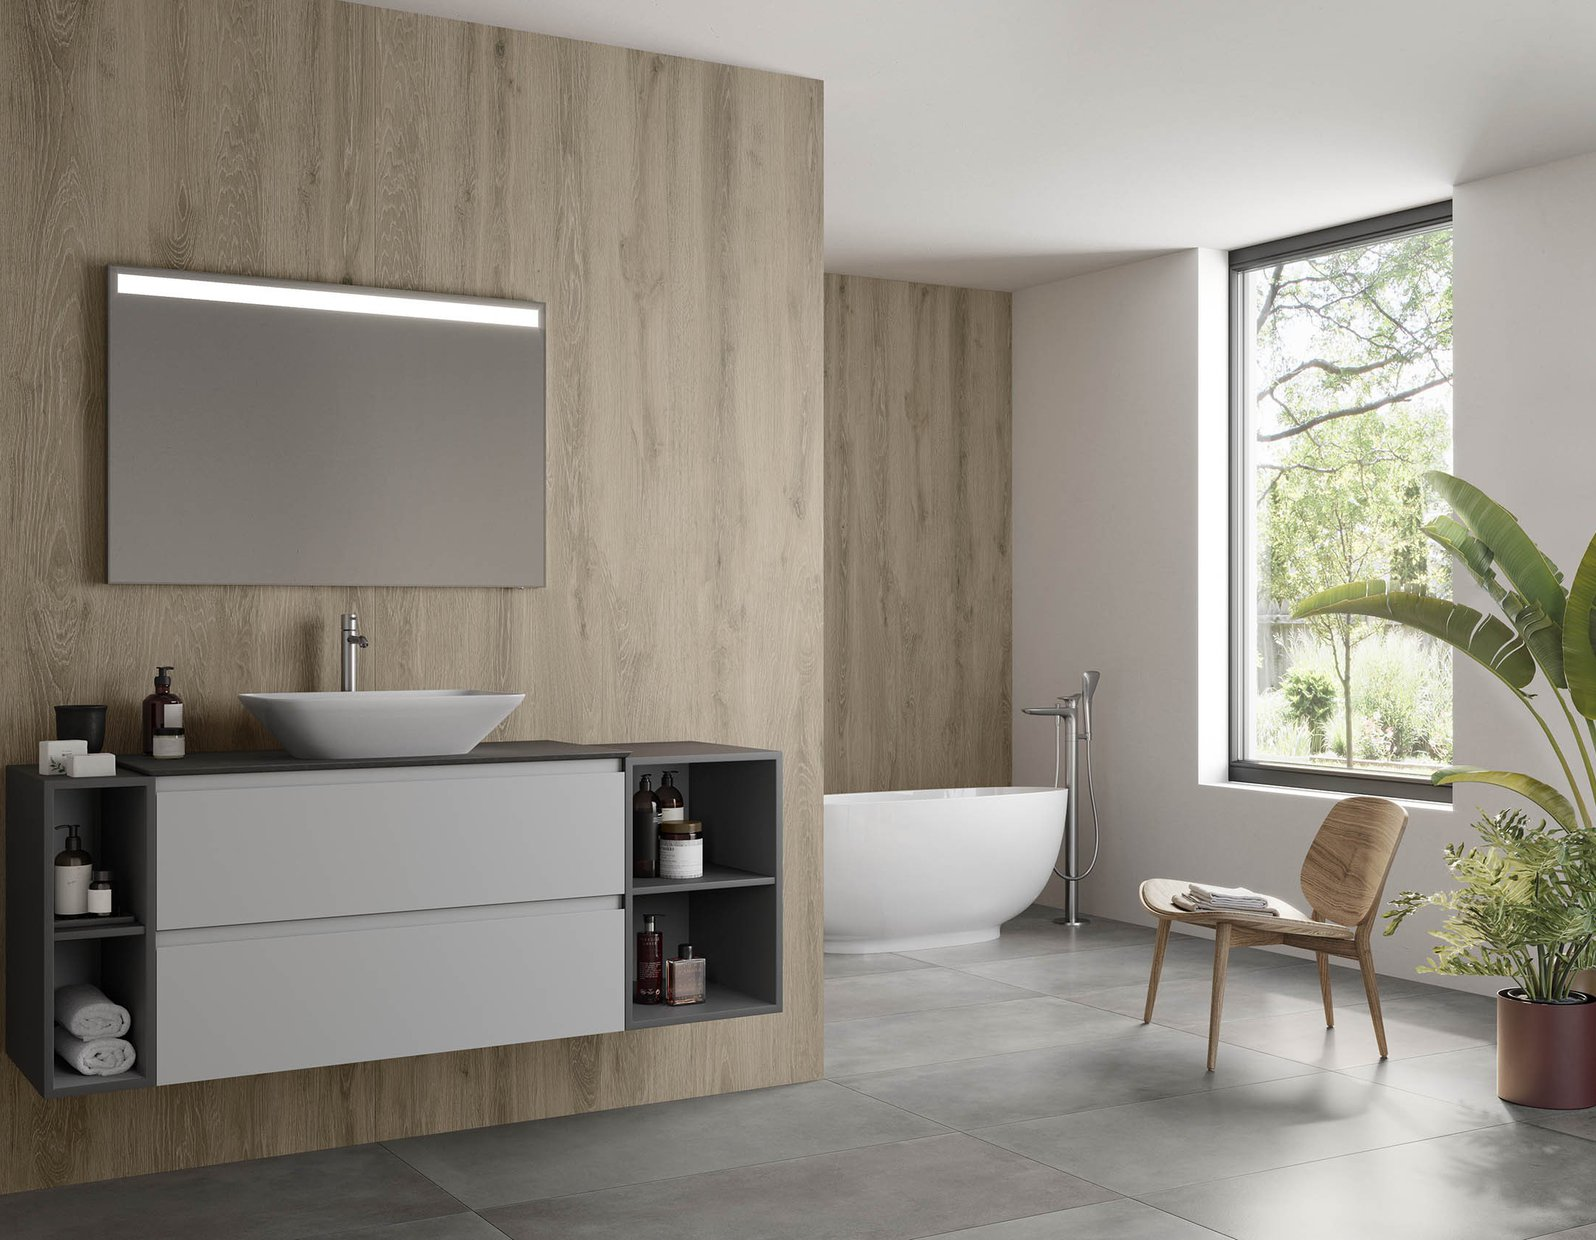 Sigurt wood xl Beige tiles Modern style Living